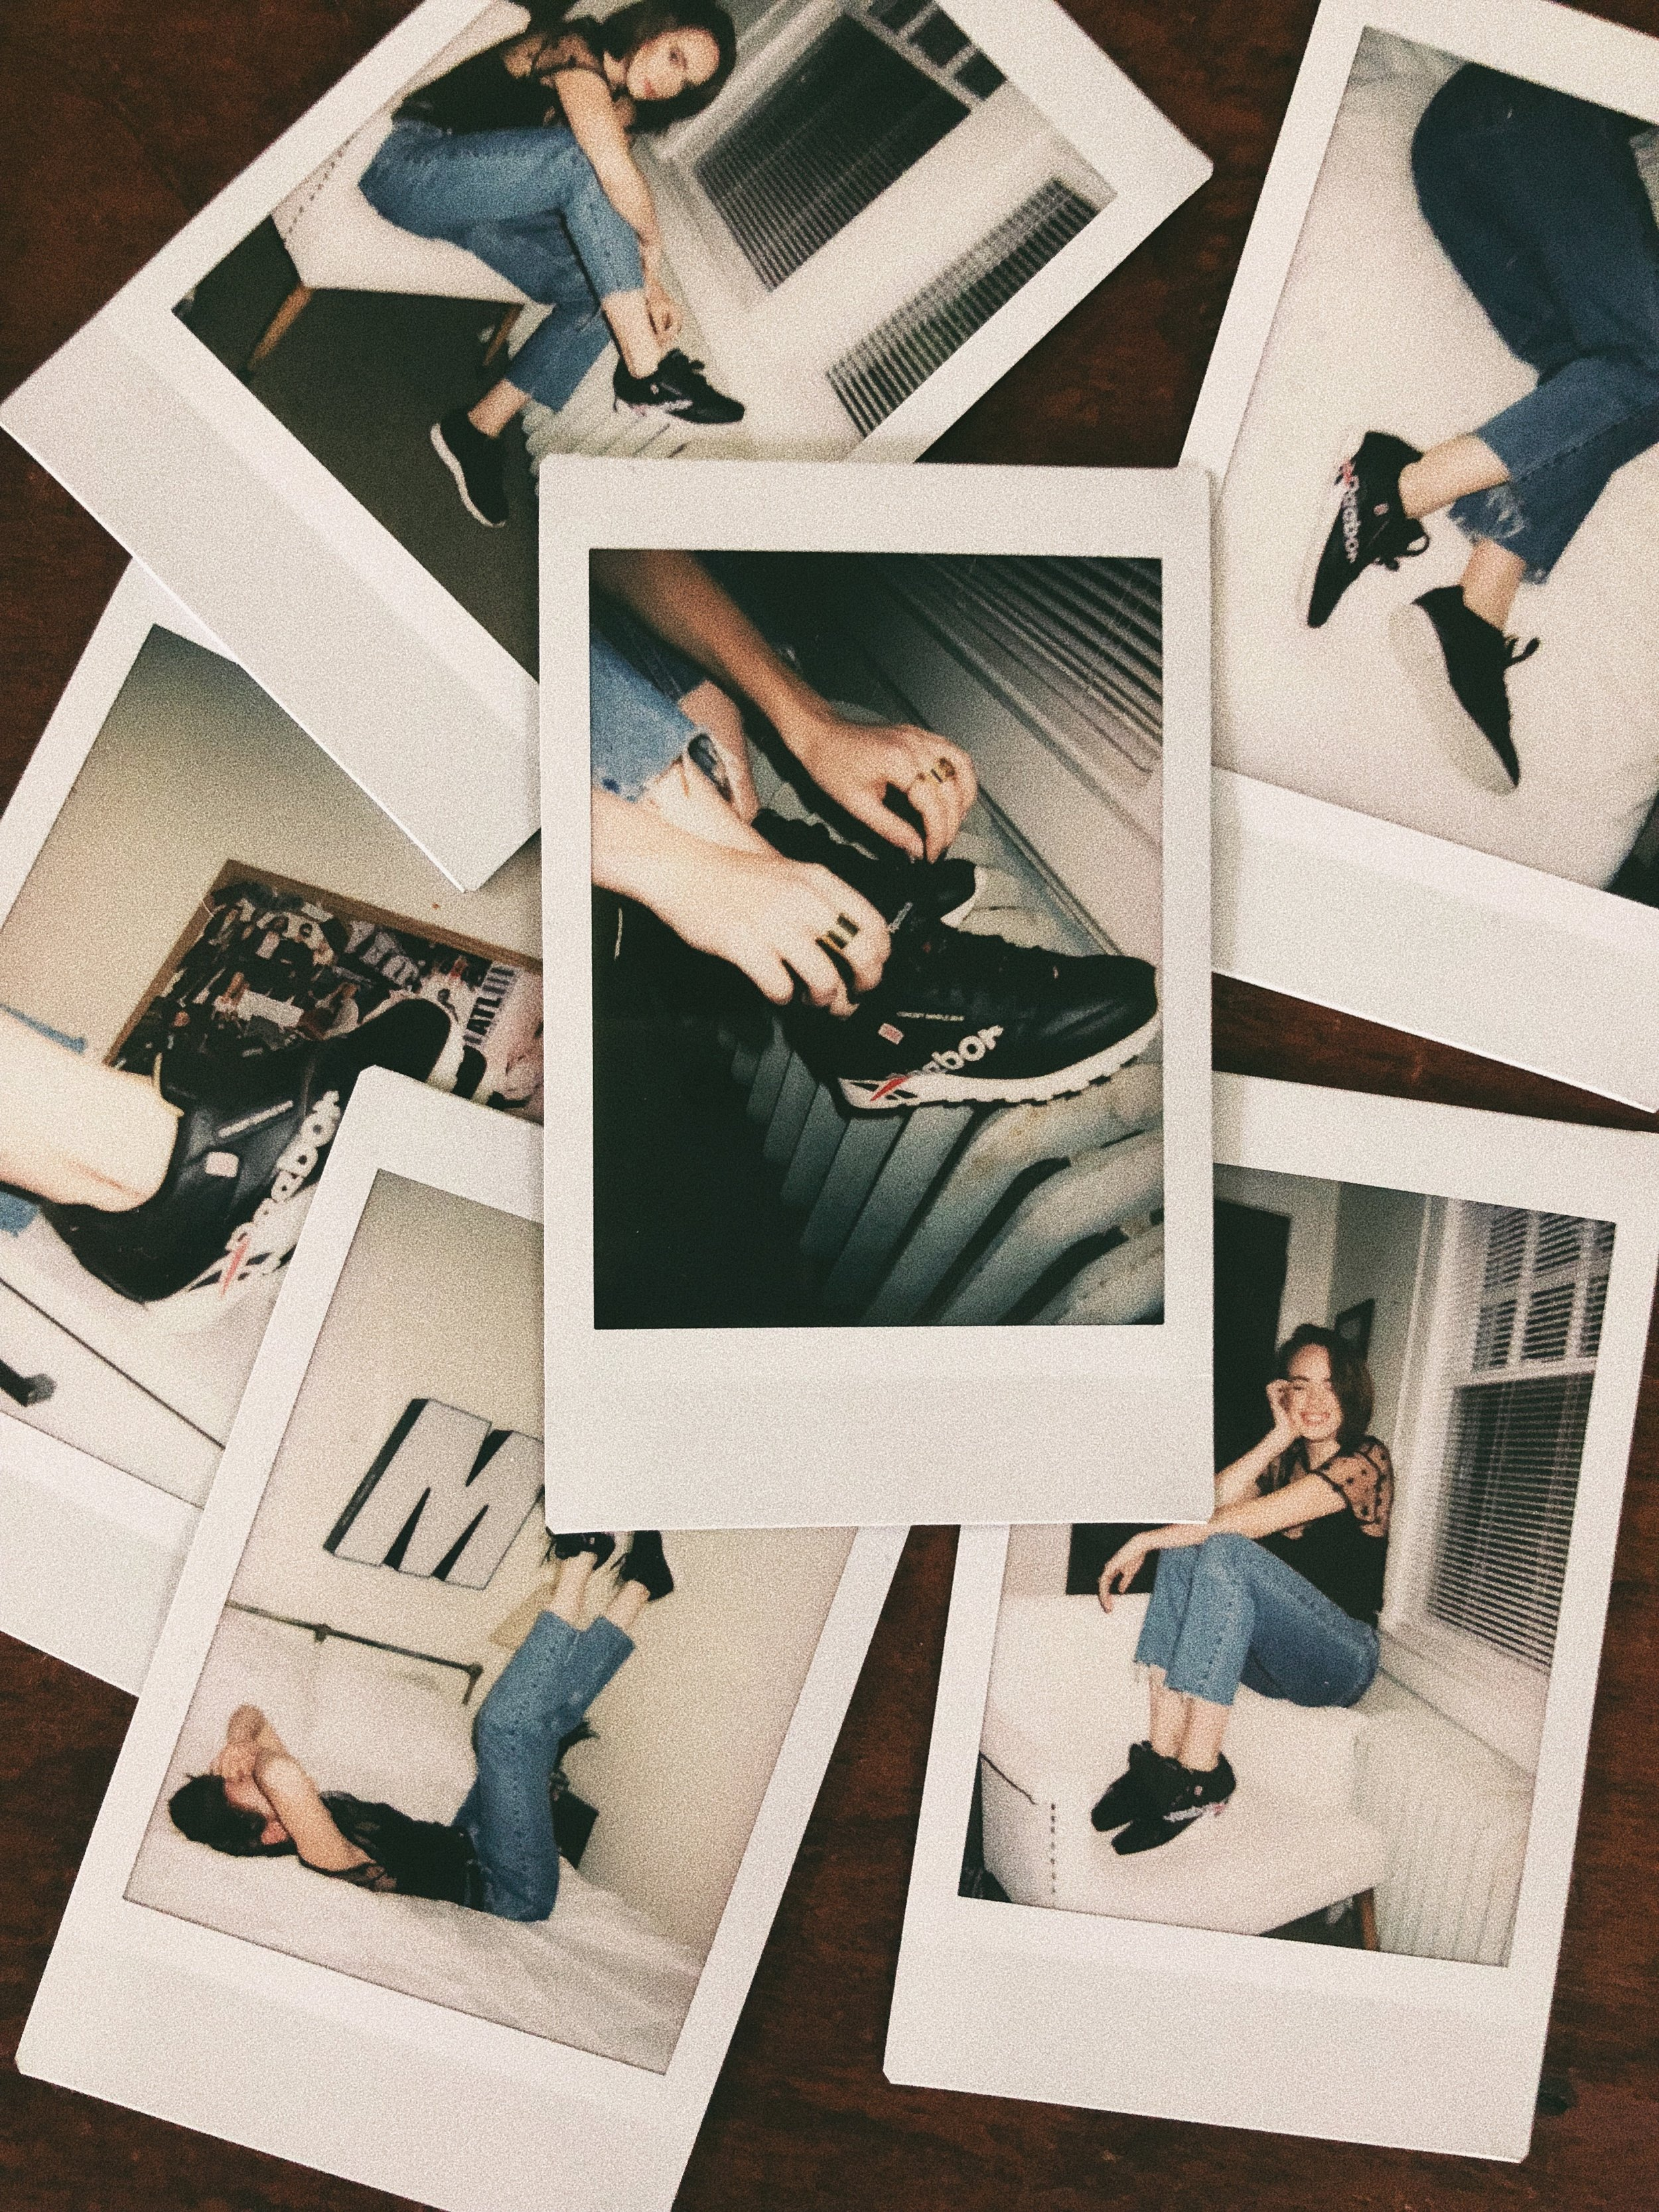 Reebok Classics release | Styling & Creative direction for social media